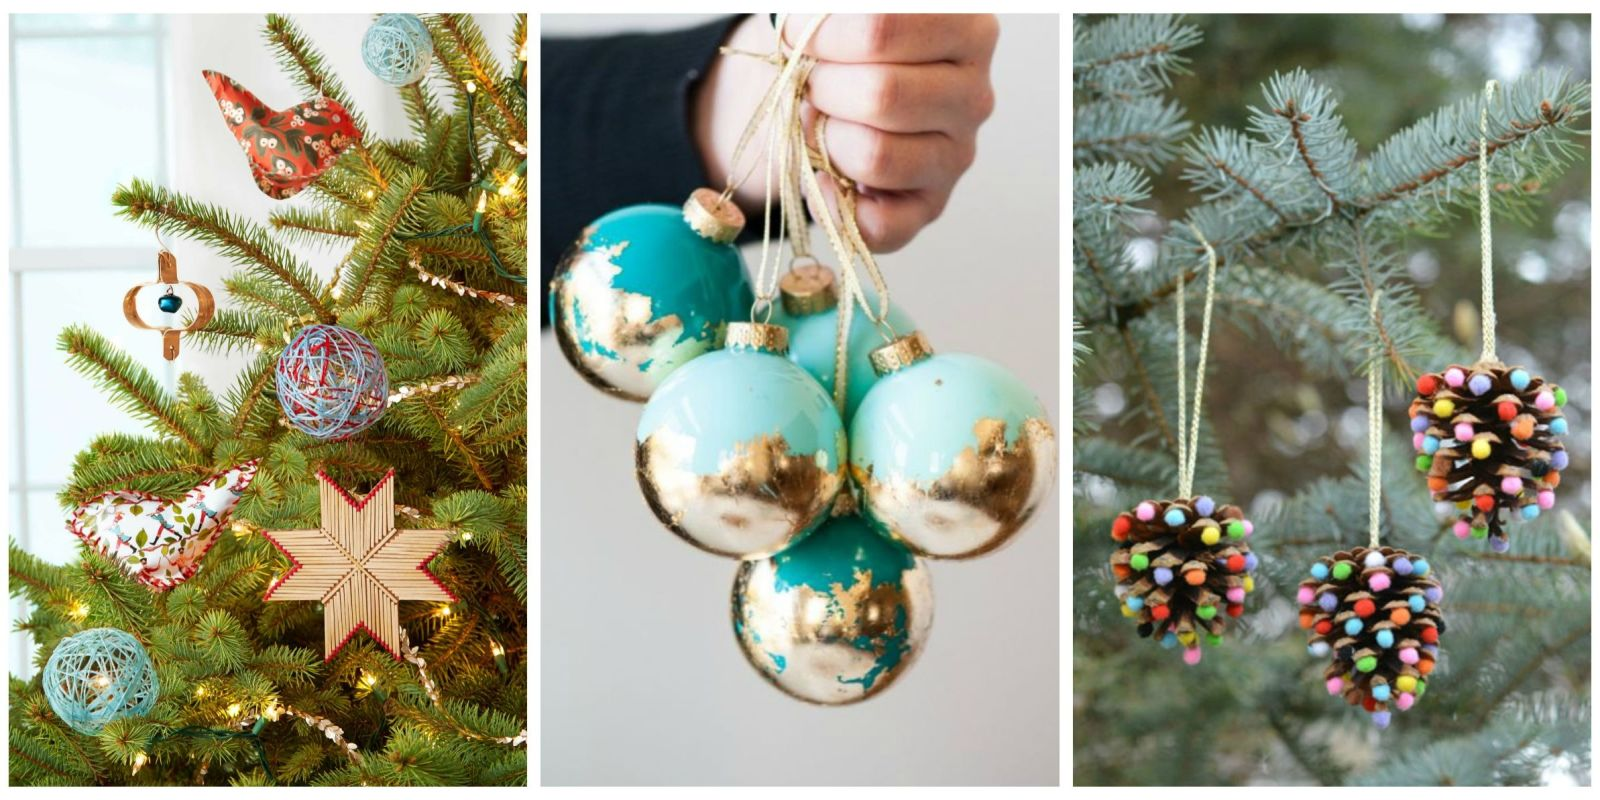 32 homemade diy christmas ornament craft ideas how to for Homemade christmas ornaments to make